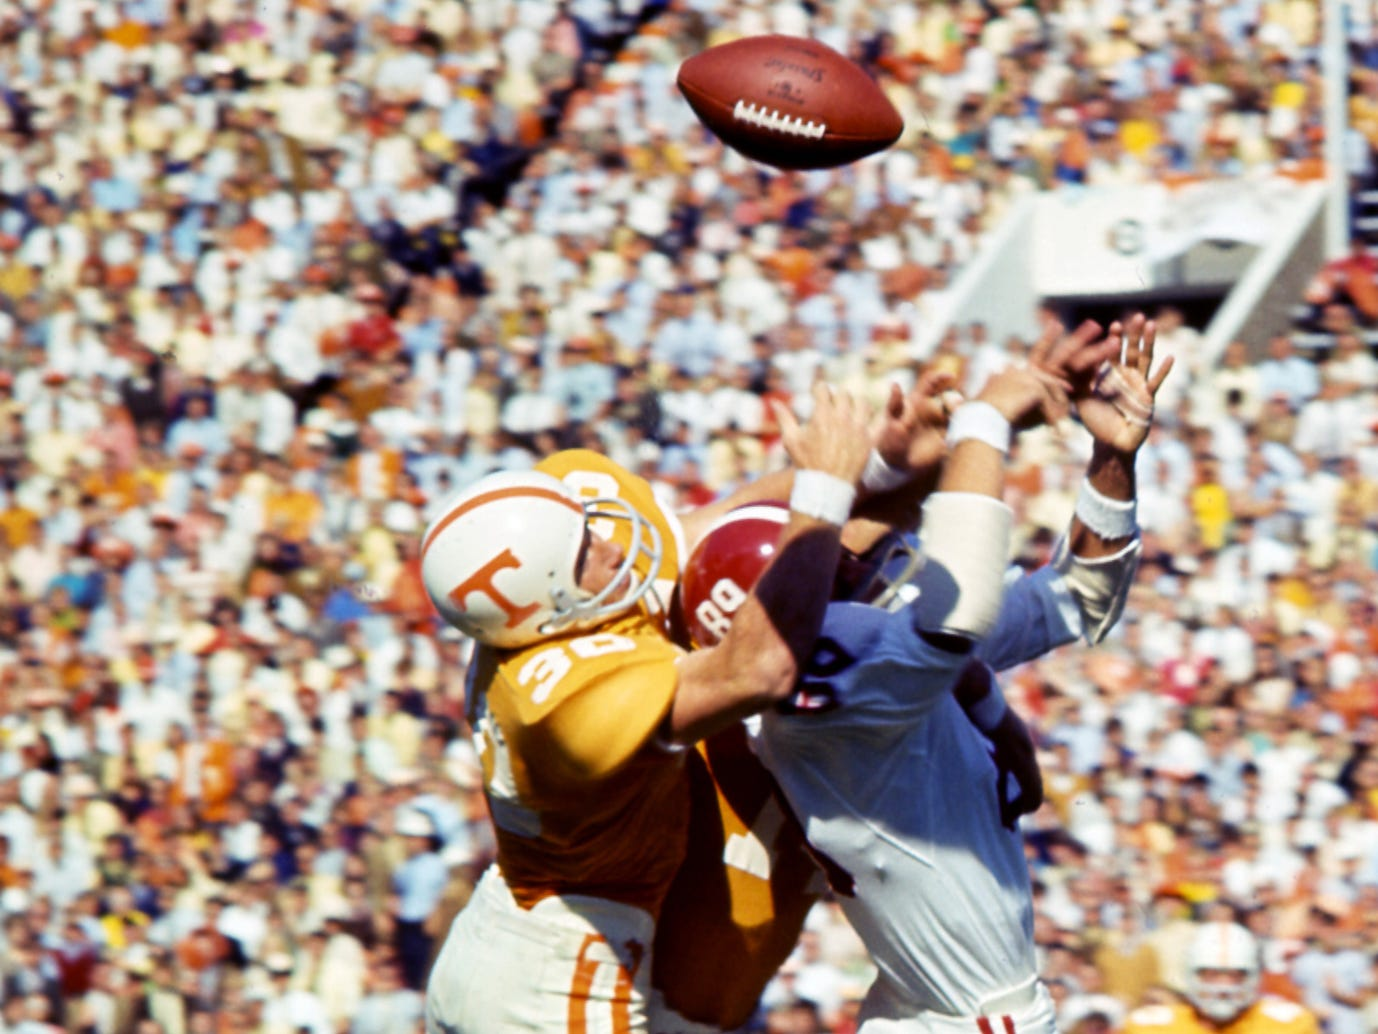 Tennessee defensive backs Bill Young (14) and Jim Weatherford (30) hit Alabama receiver Conrad Fowler (89) to break up a pass near the goal line at Neyland Stadium Oct. 19, 1968.